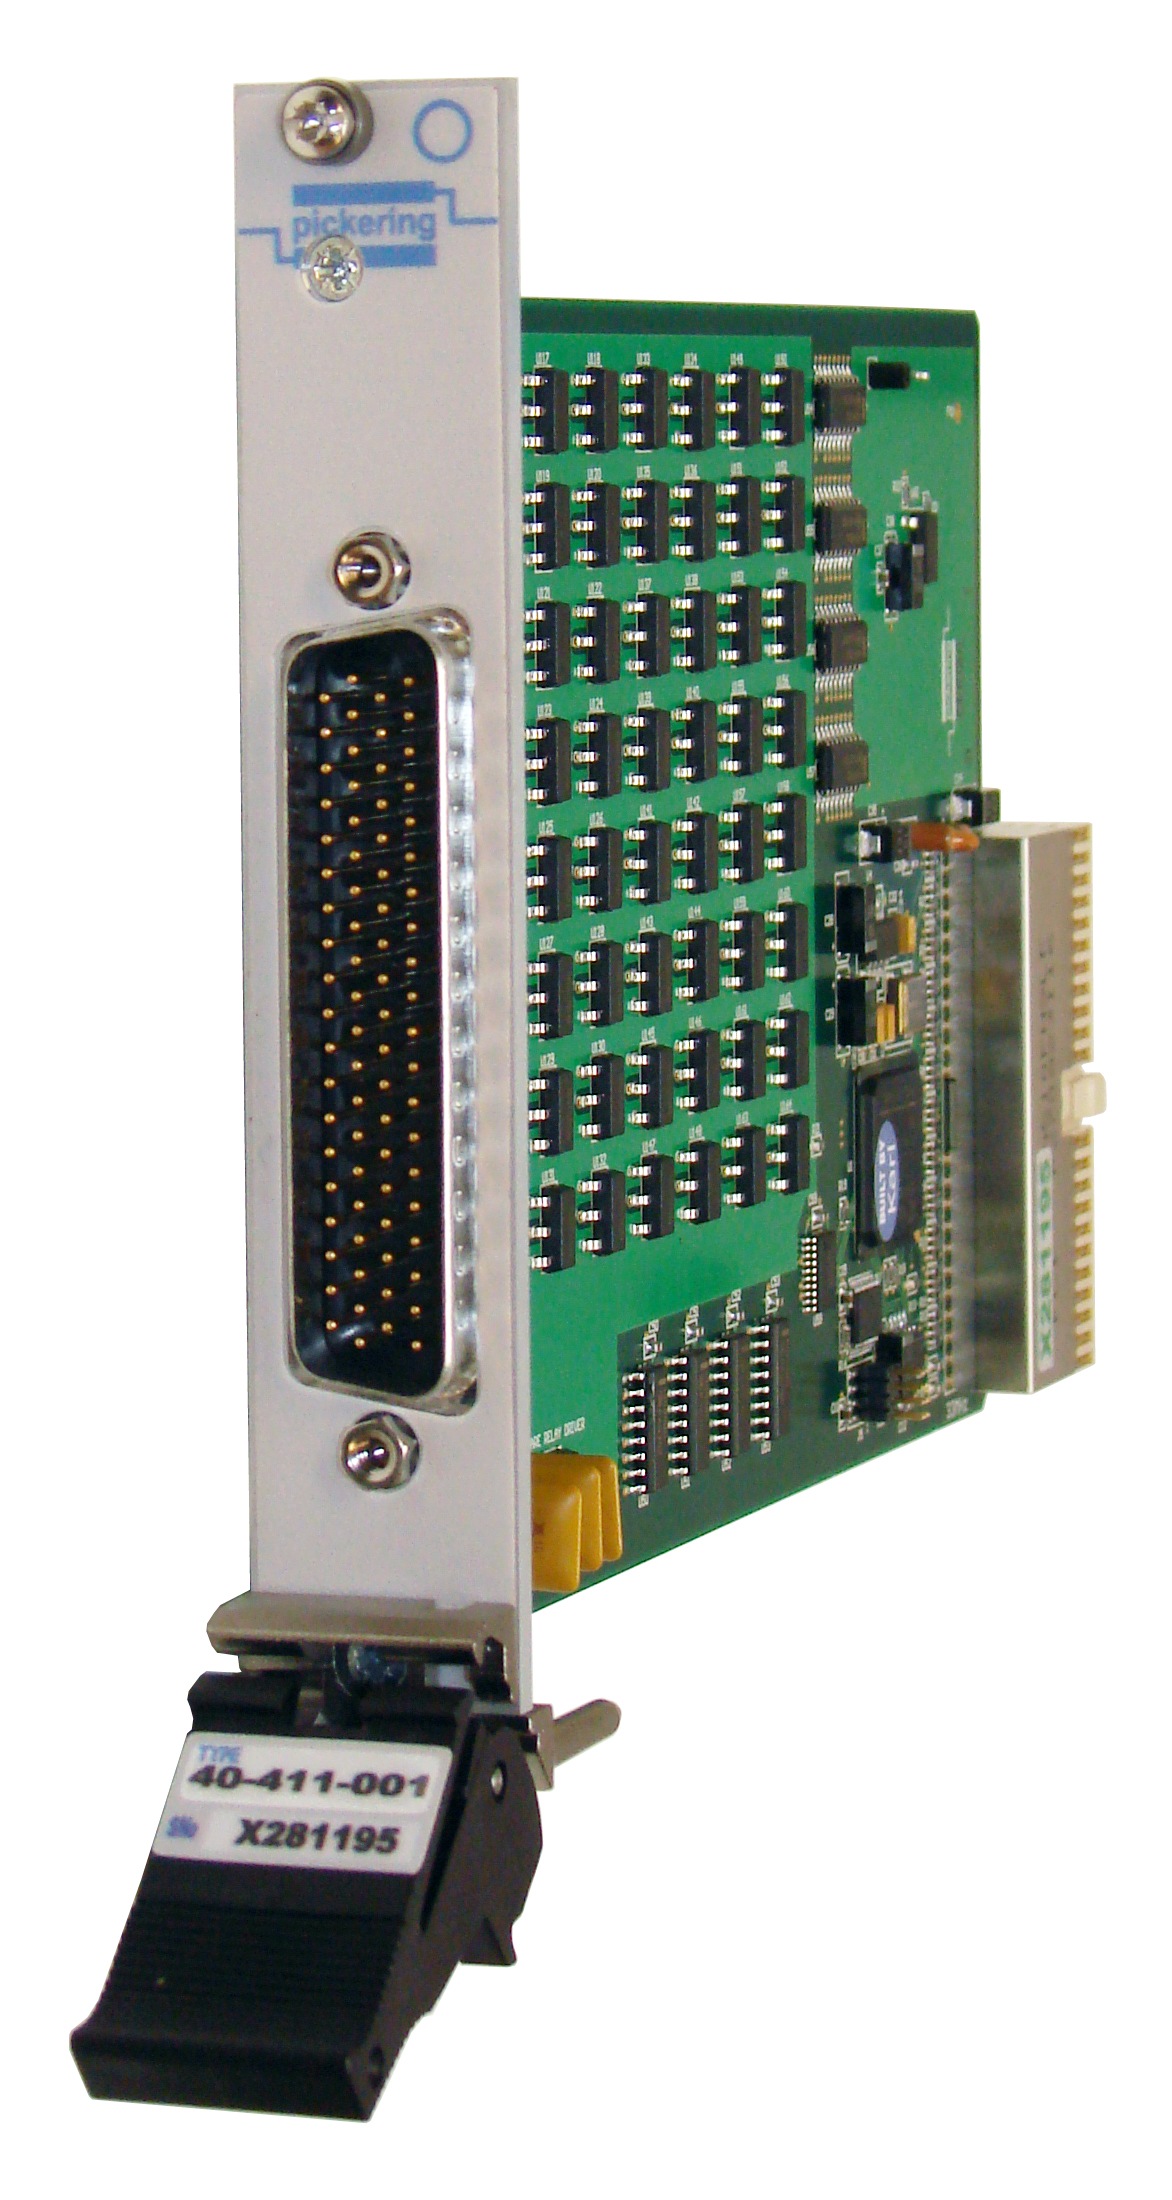 Front panel of PXI card 40-411